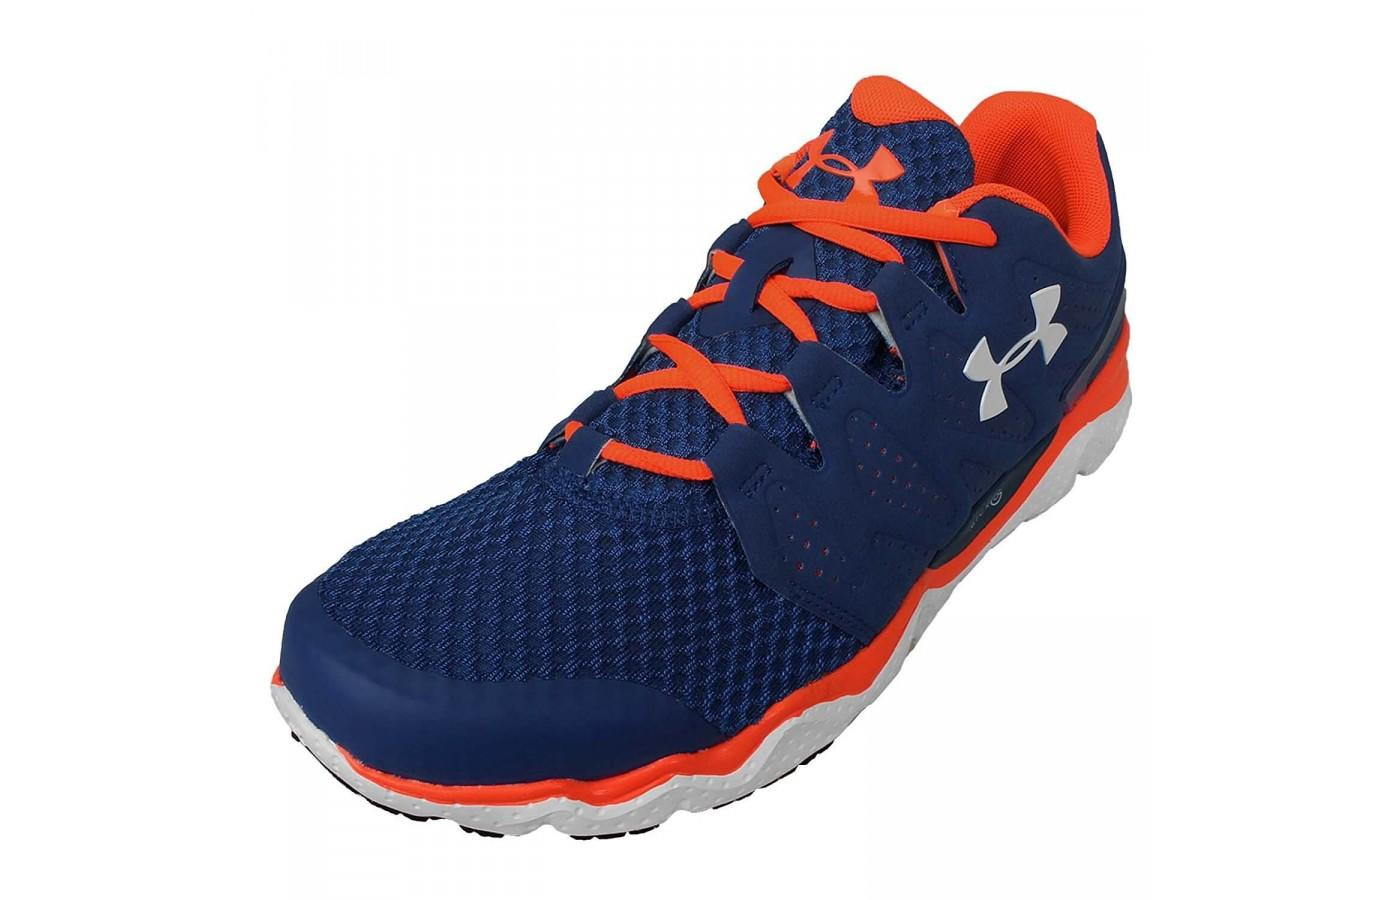 Under Armour Micro G Optimum features simple yet bold colors